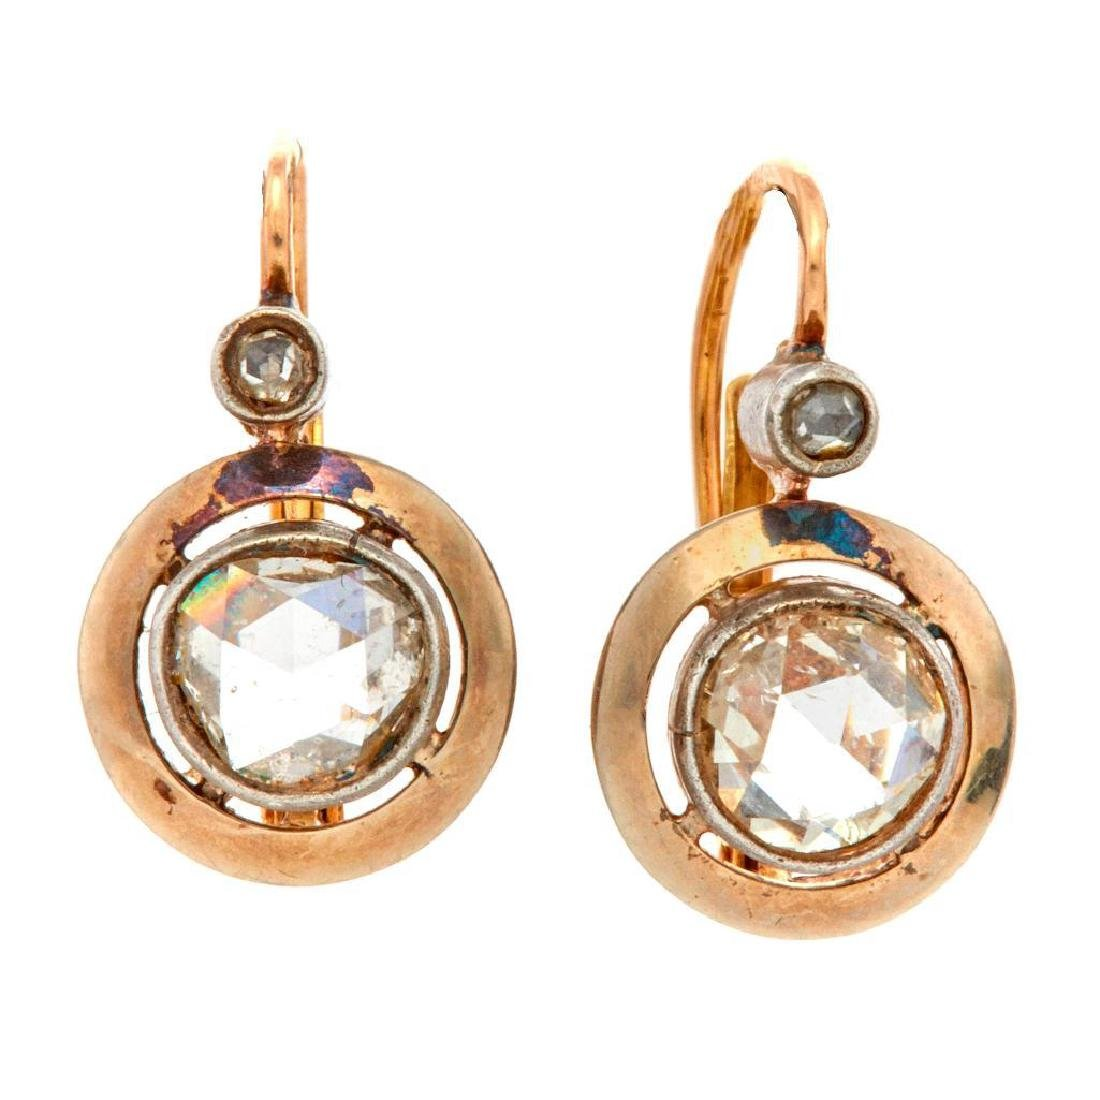 Pair of diamond, silver and 14k gold earrings